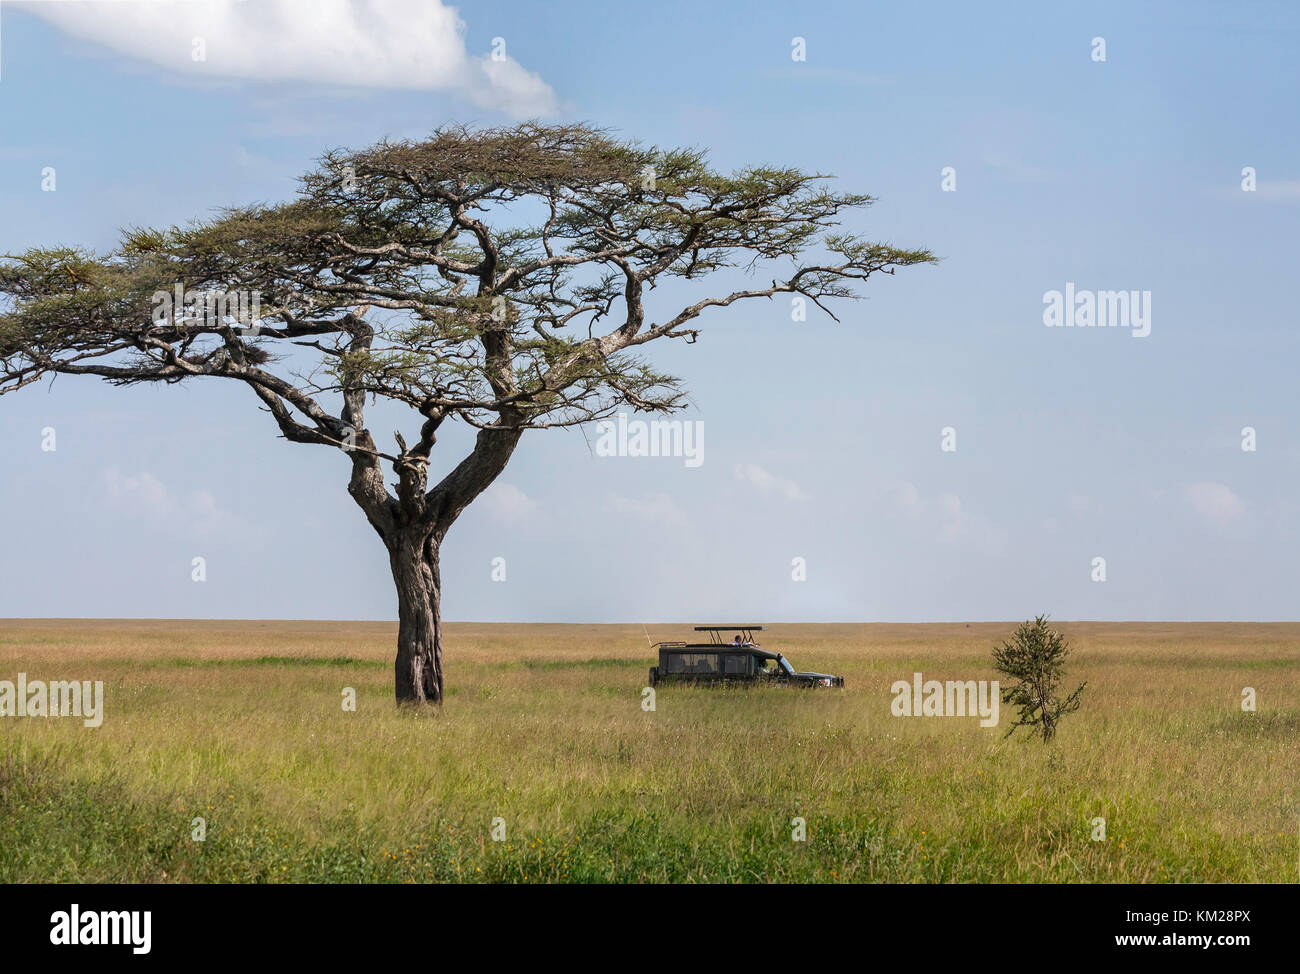 Safari jeep in the Serengeti, Tanzania, Africa - Stock Image